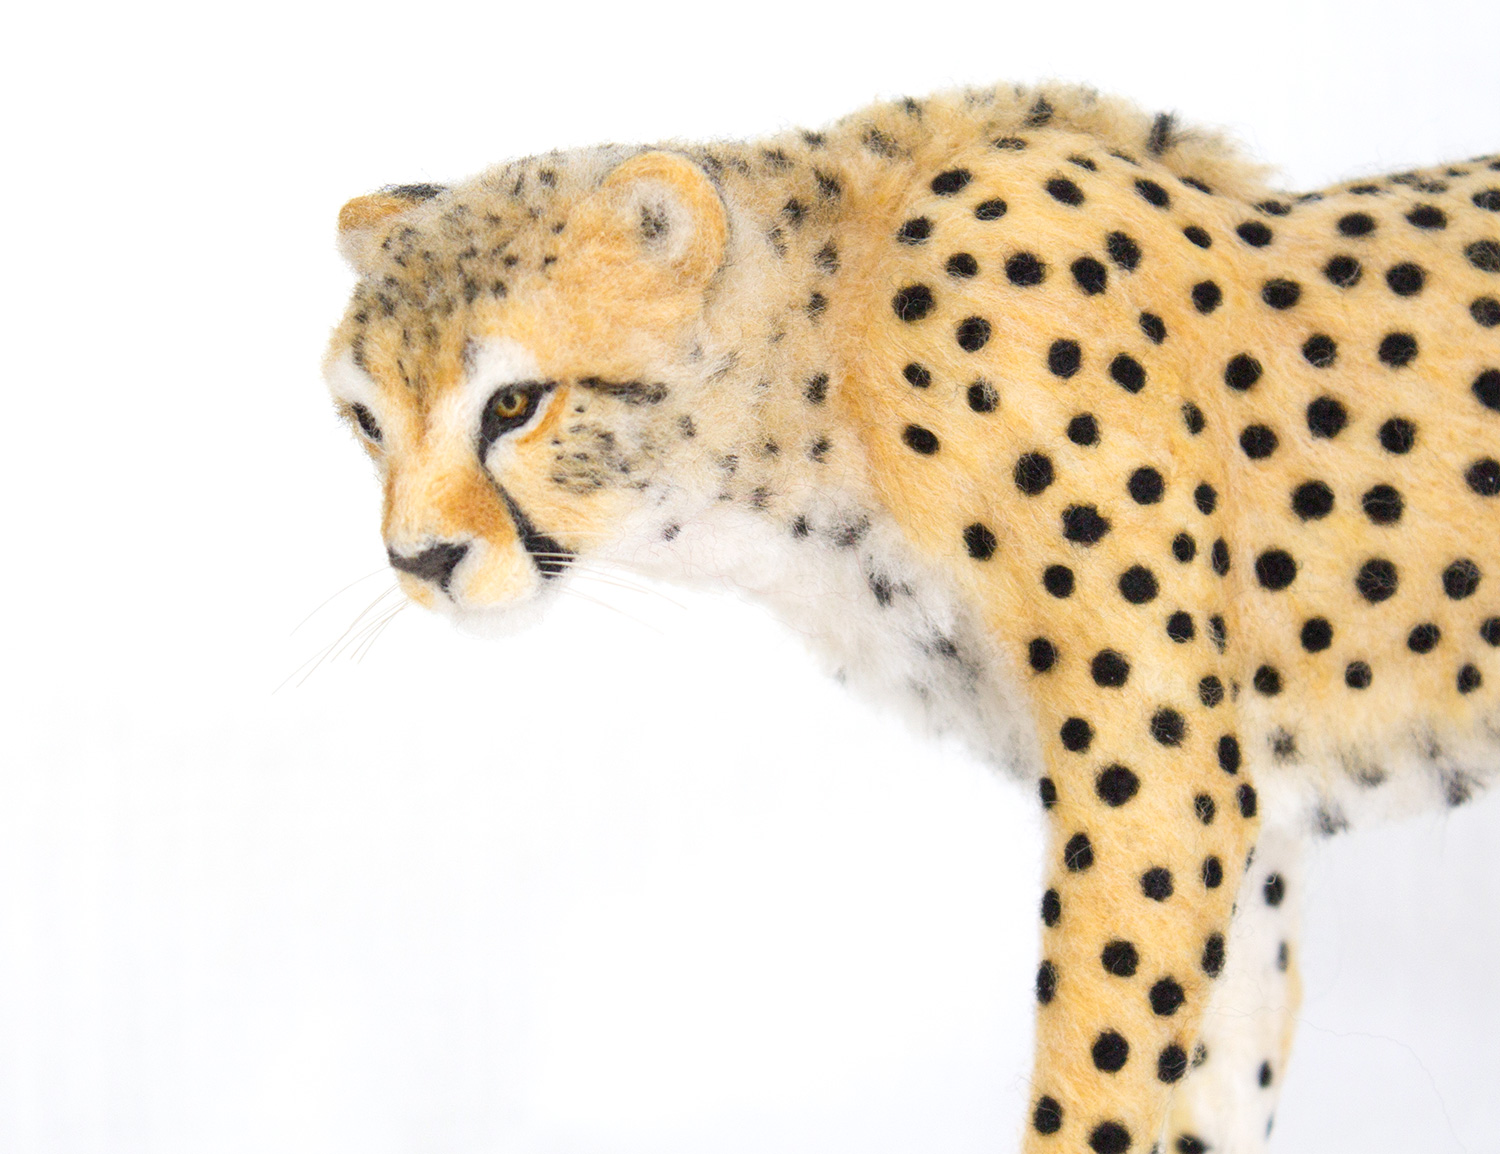 needle-felt-cat-sculpture-11.jpg